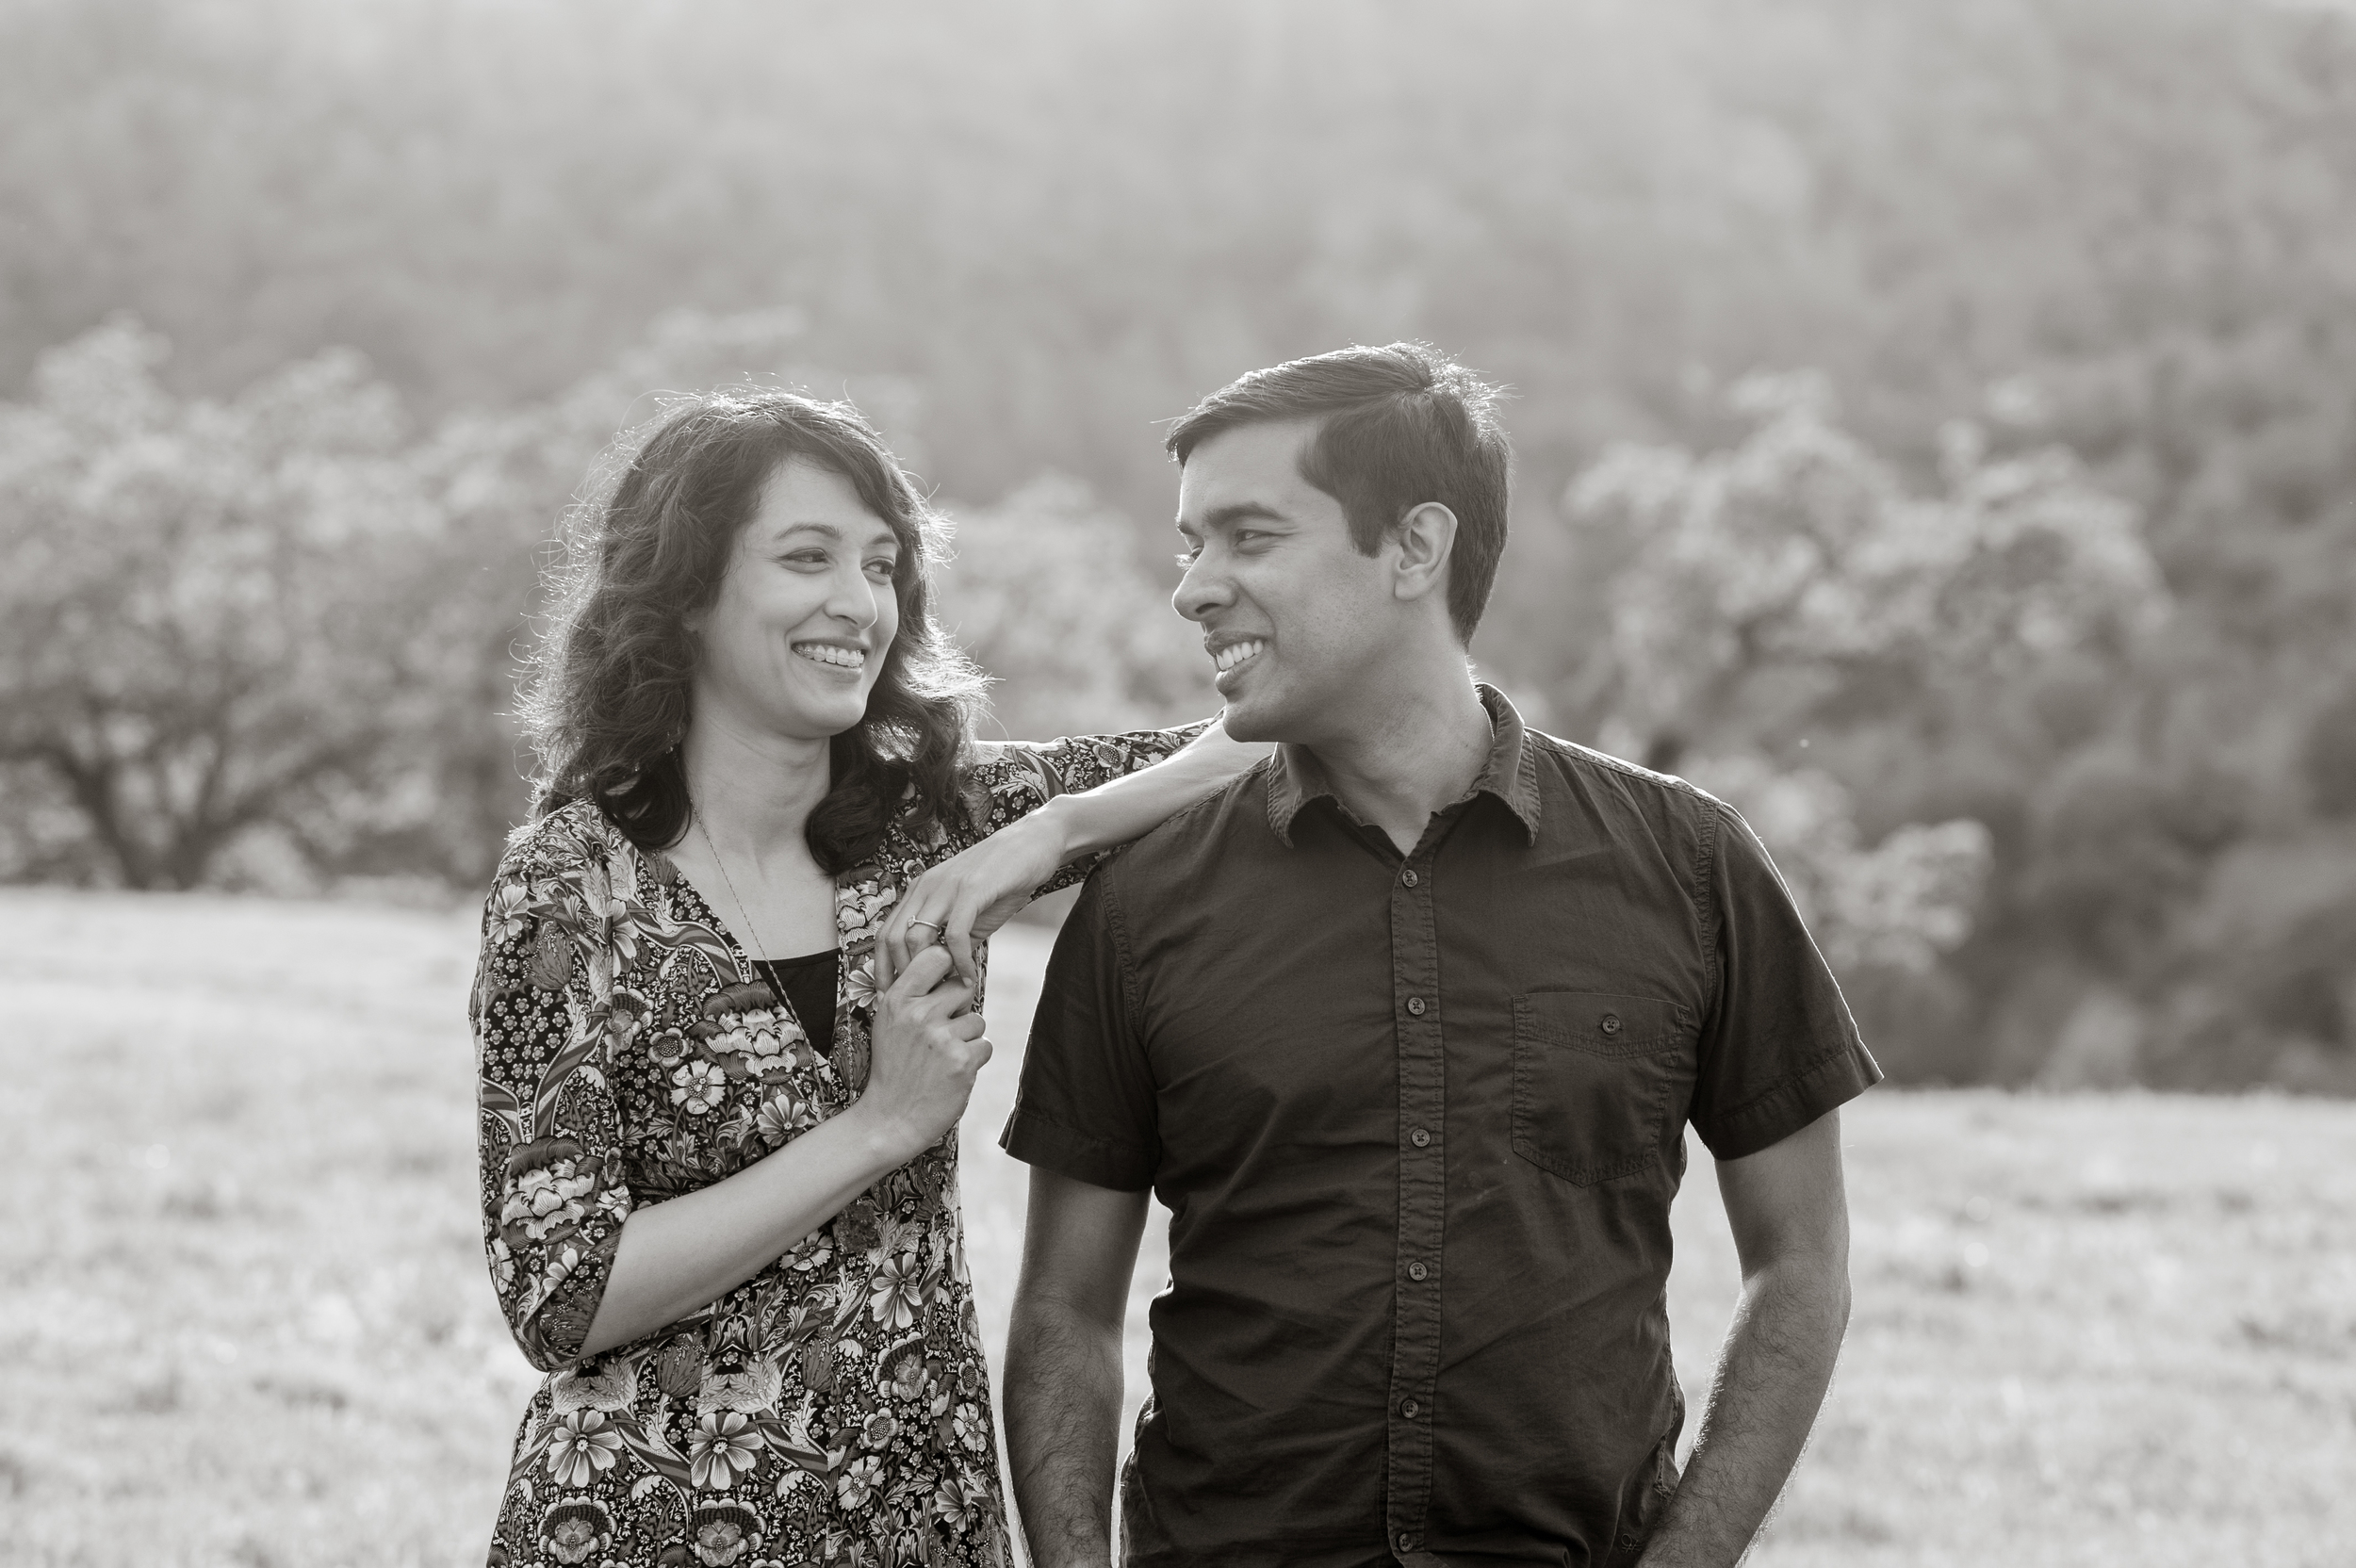 14-sunol-regional-wilderness-springtime-engagement-session.jpg